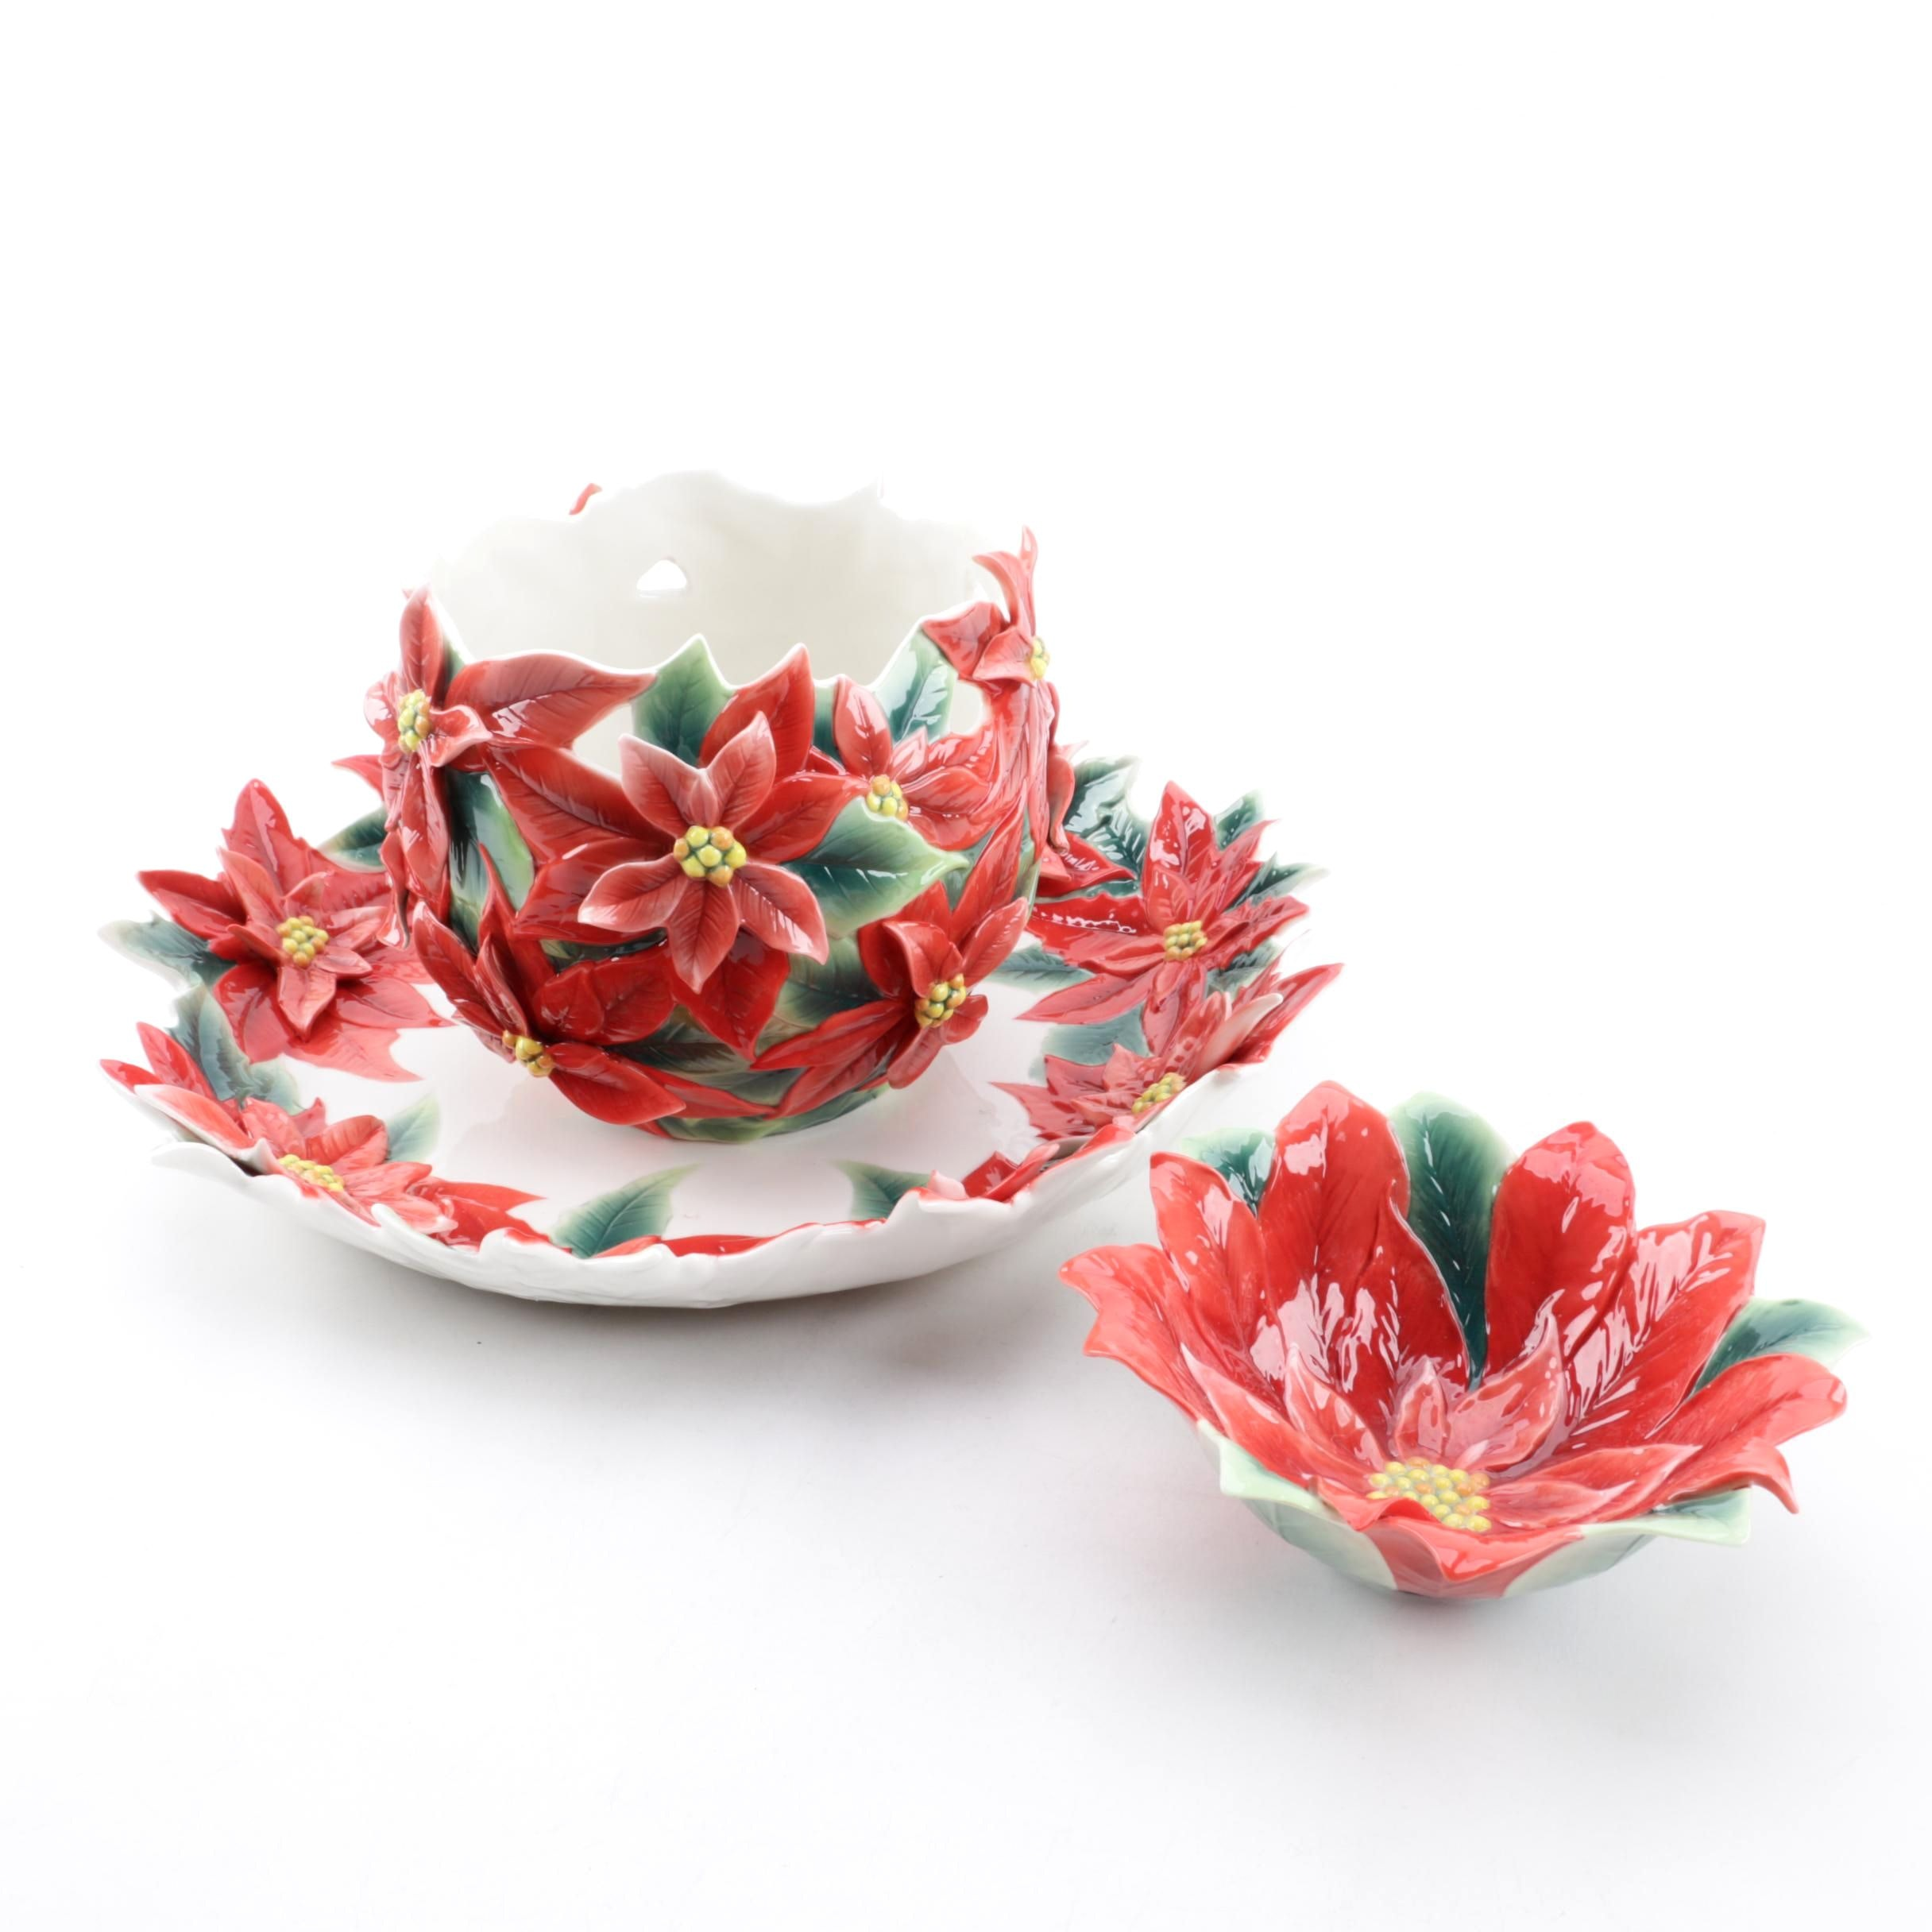 "Franz ""Poinsettia"" Sculptured Porcelain Vase and Serving Dishes"